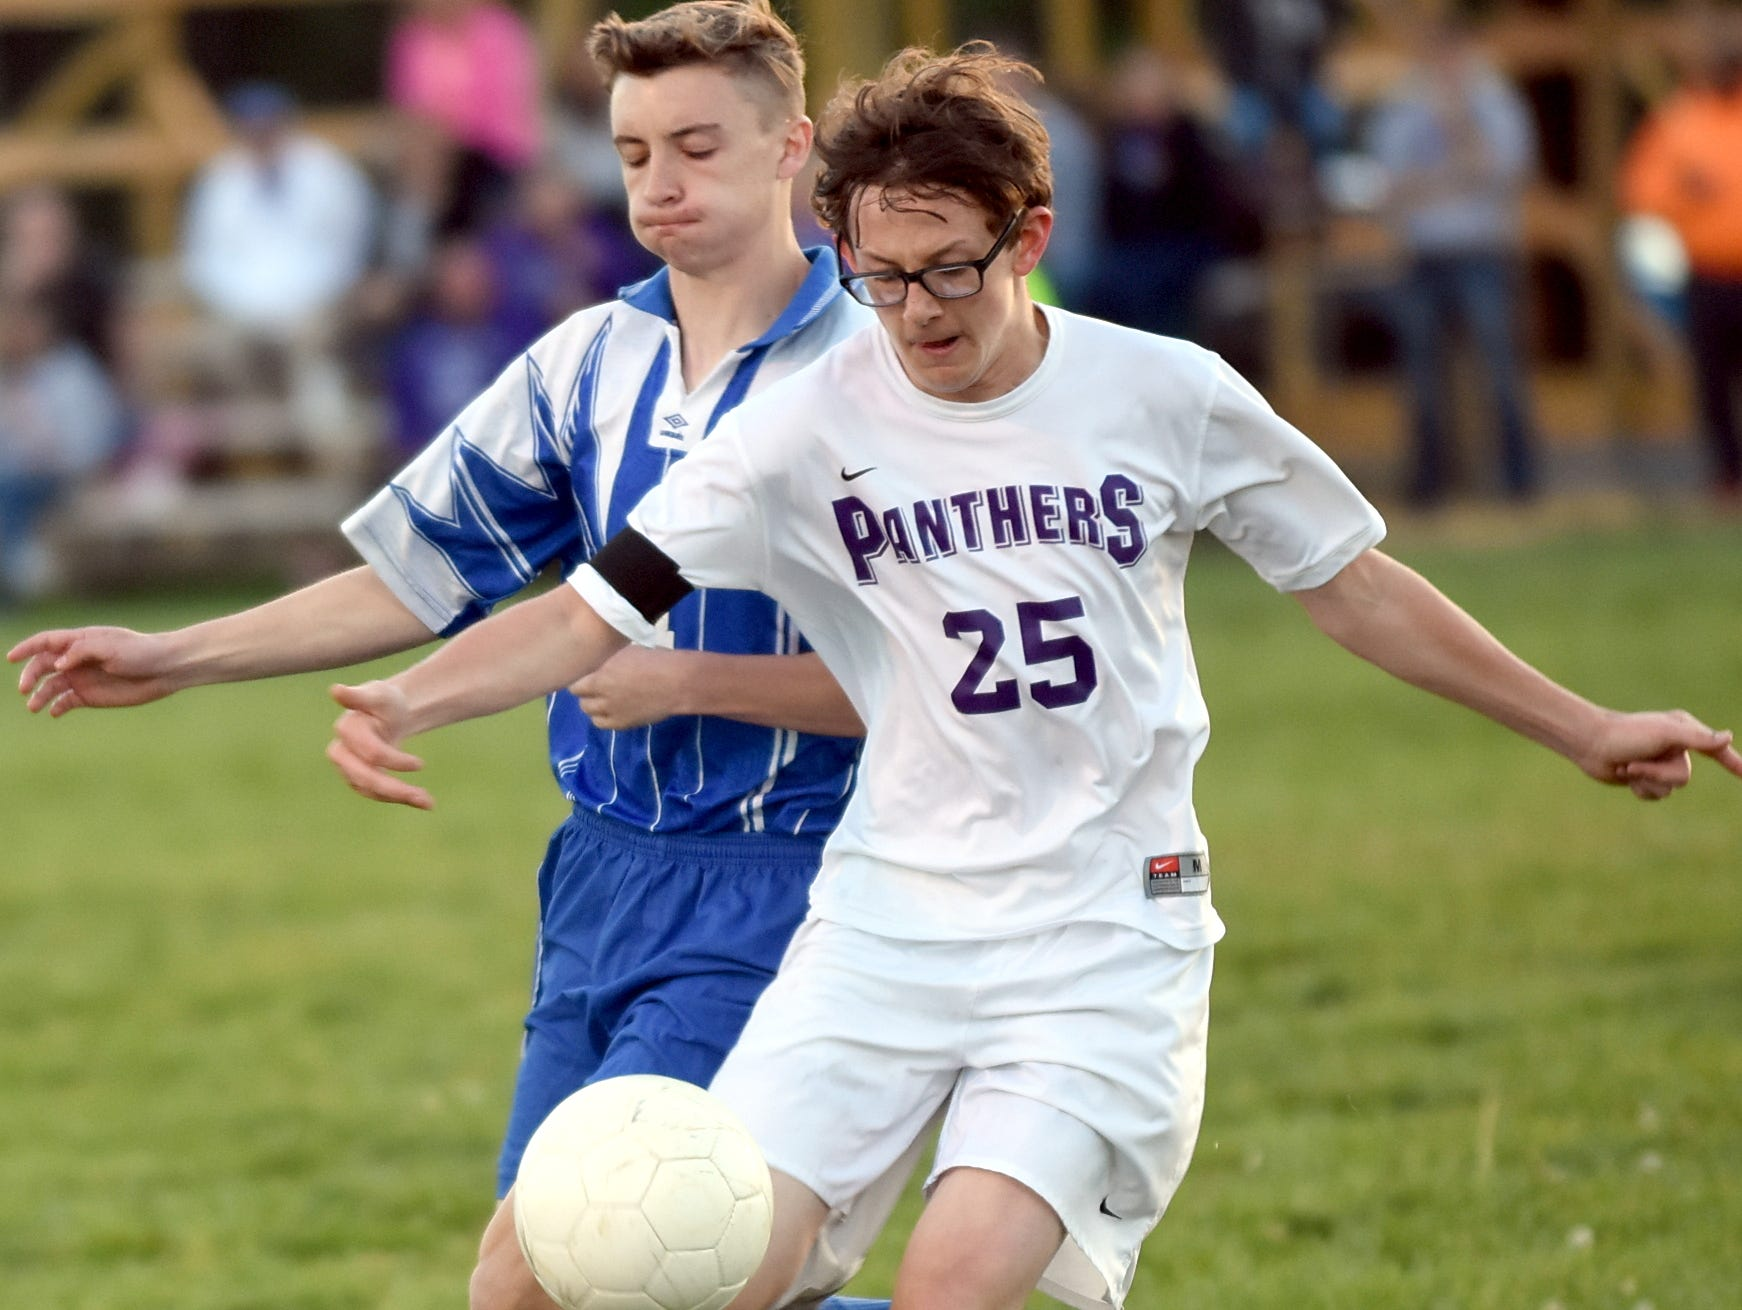 Portland High freshman Nathan Brown plays a first-half throw-in in front of White House sophomore Ethan Smith.